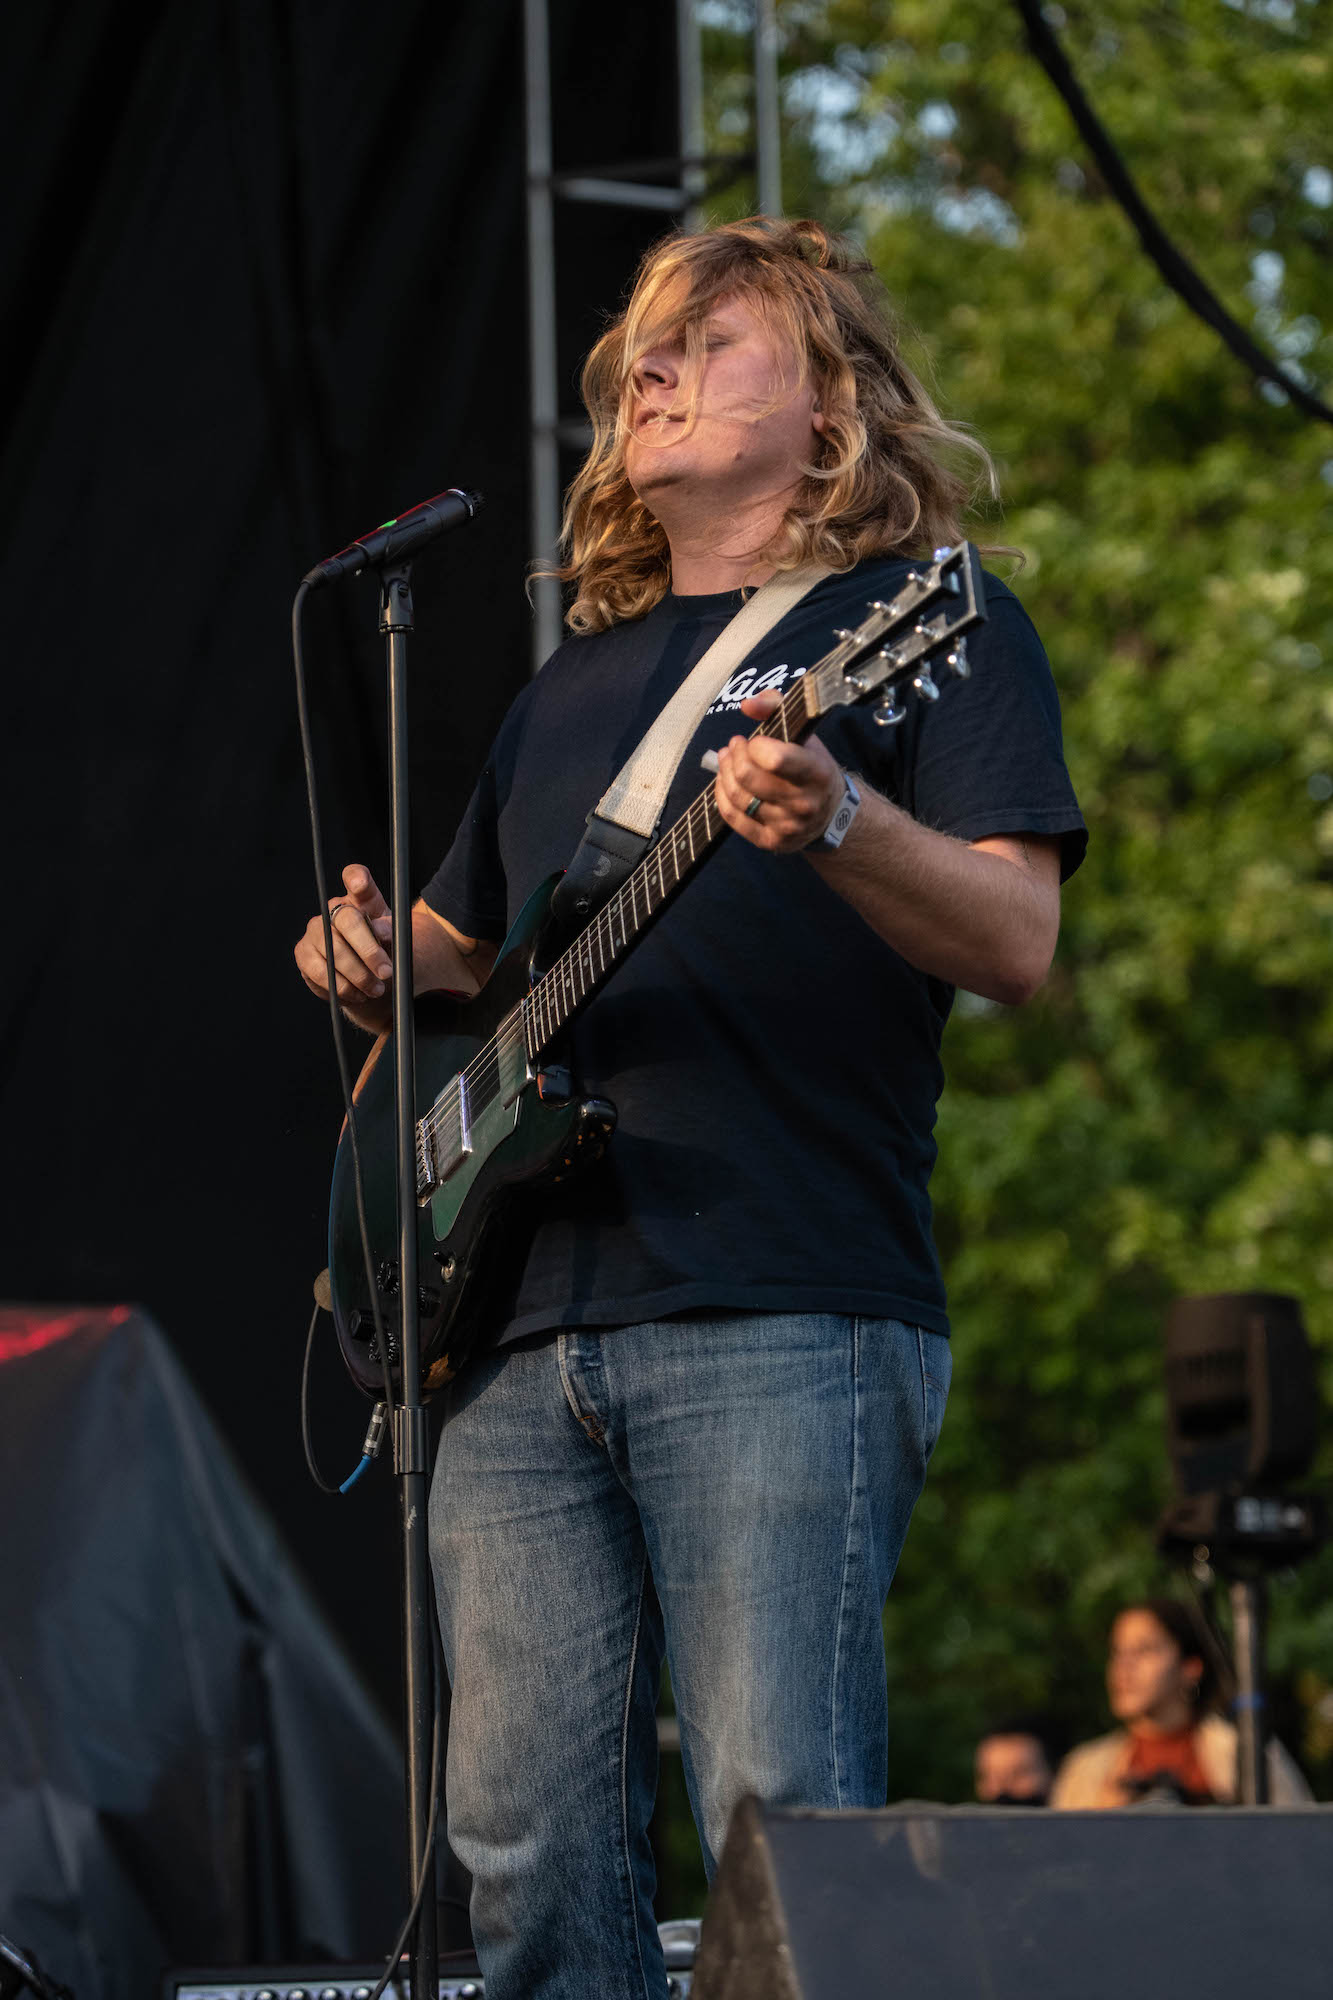 Ty Segall Live at Pitchfork [GALLERY] 4